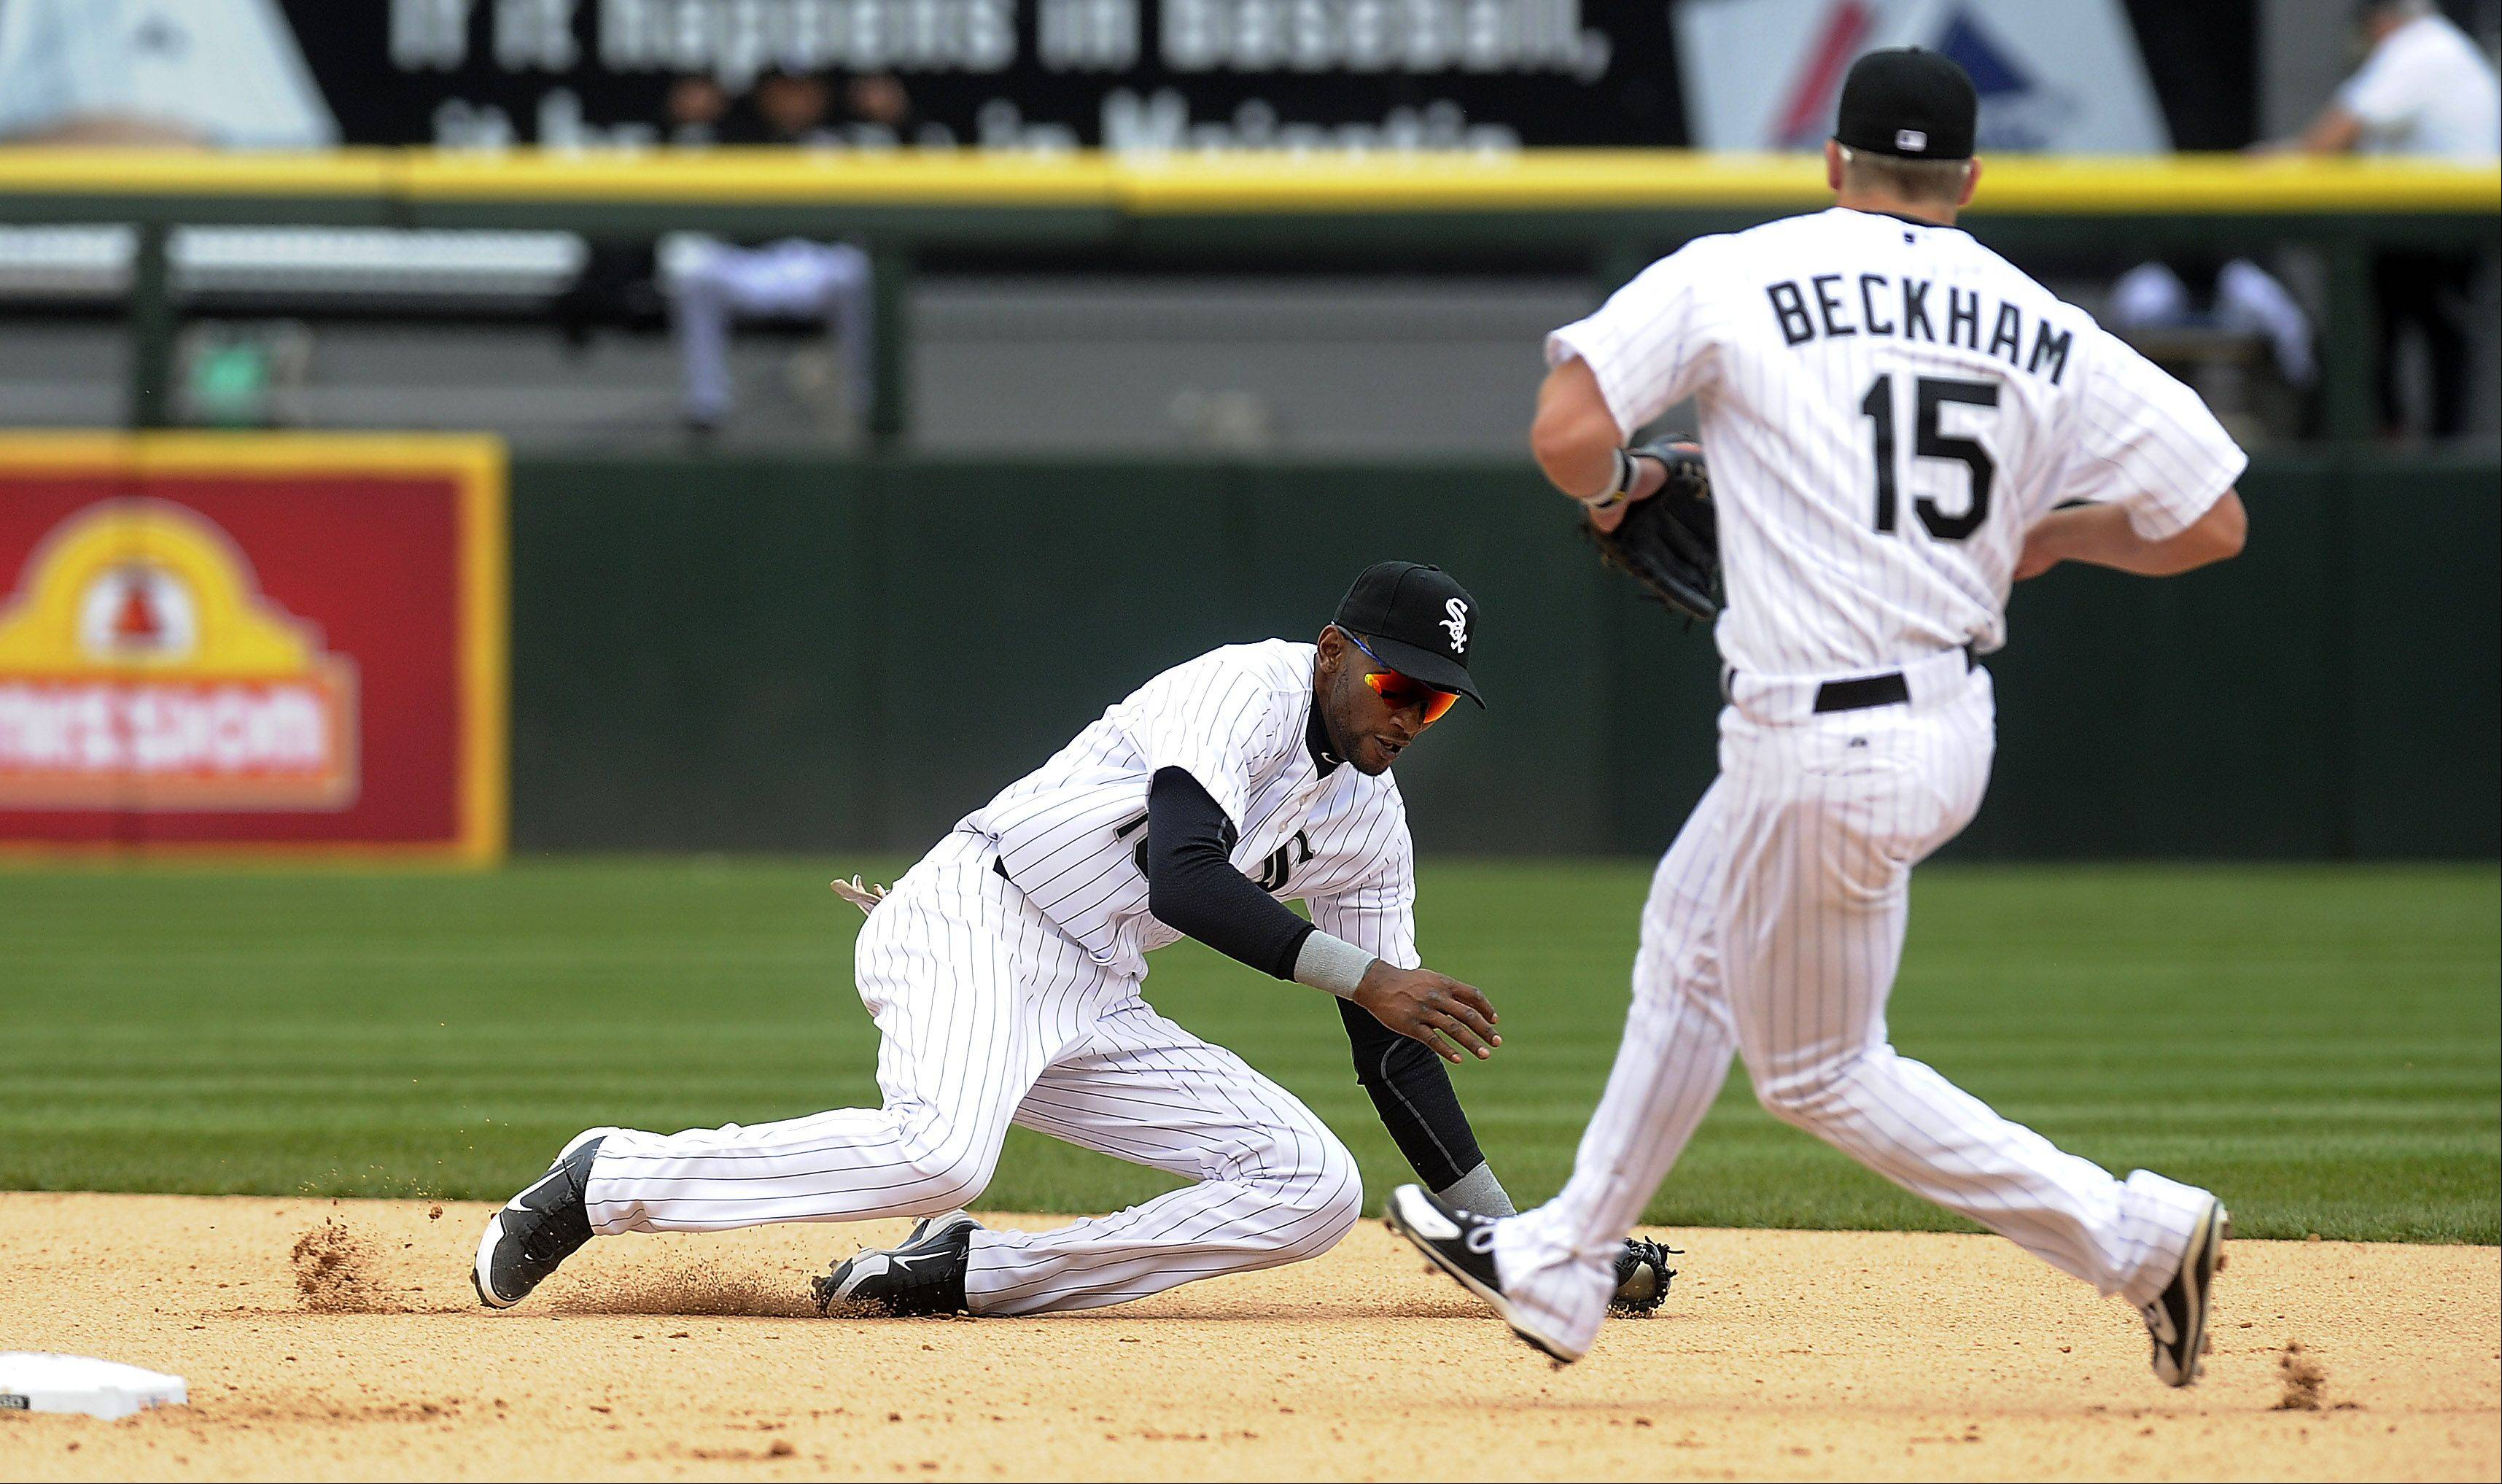 White Sox's Alexei Ramirez stops a ball hit by the Tiger's Miguel Cabrera in the eighth inning .